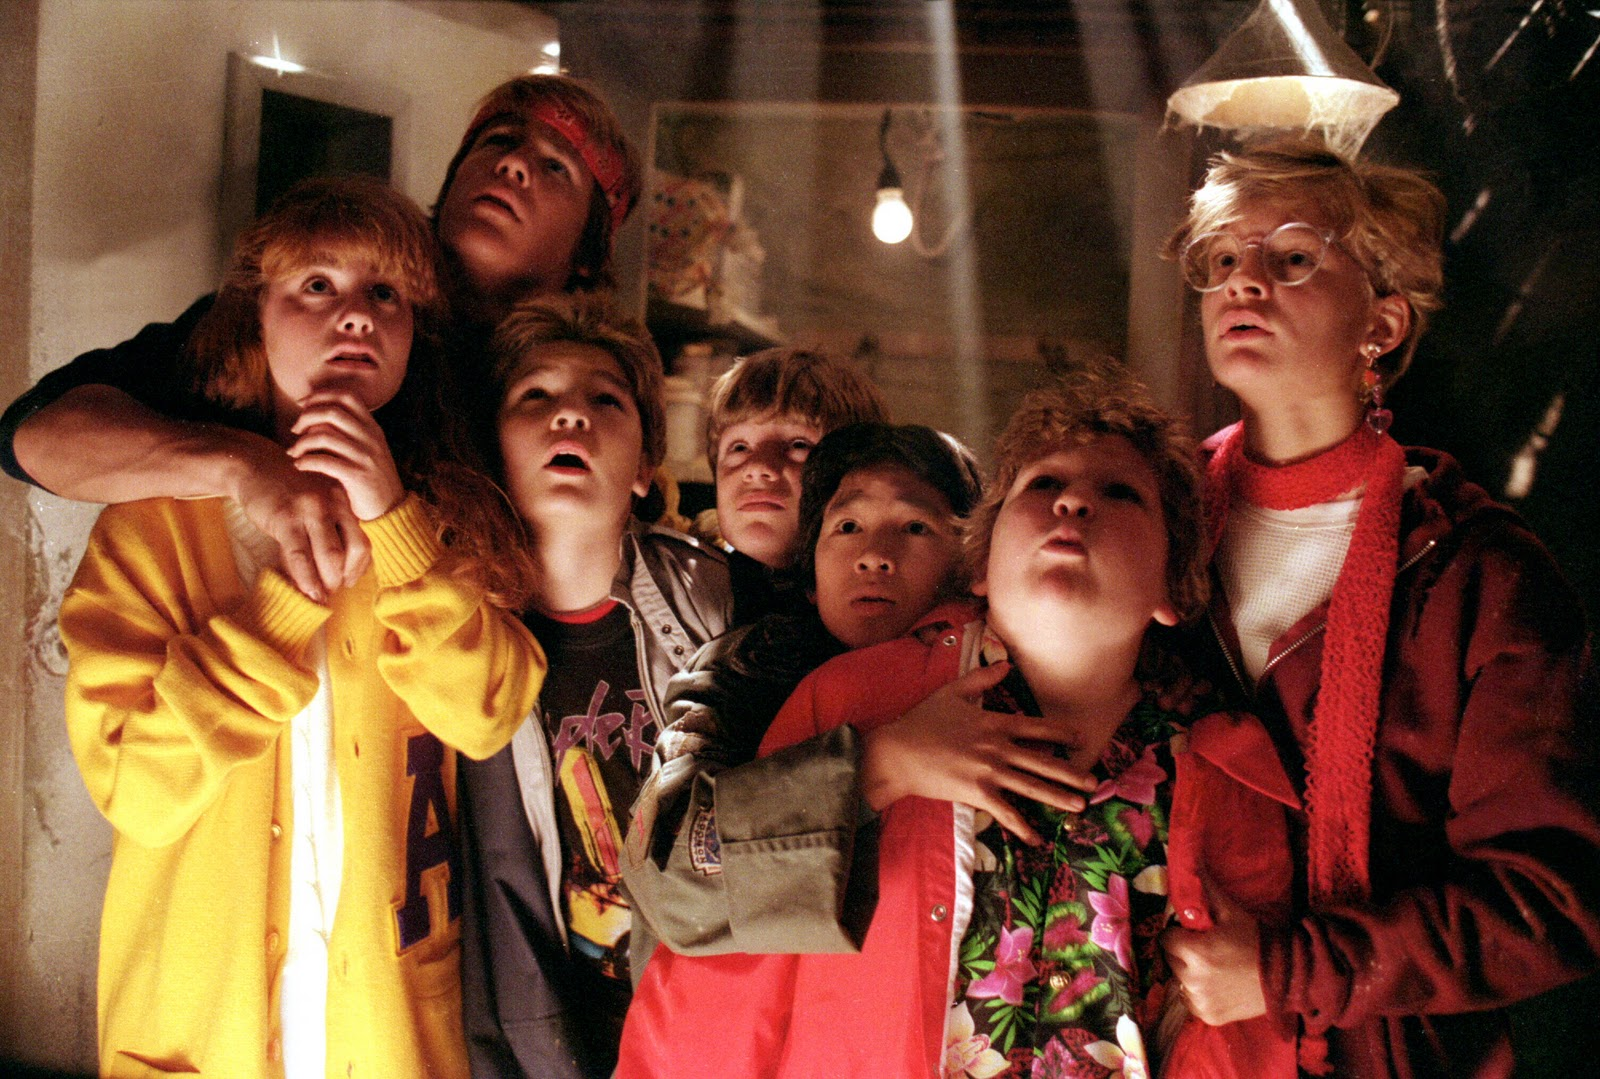 5-things-you-might-not-know-about-the-goonies